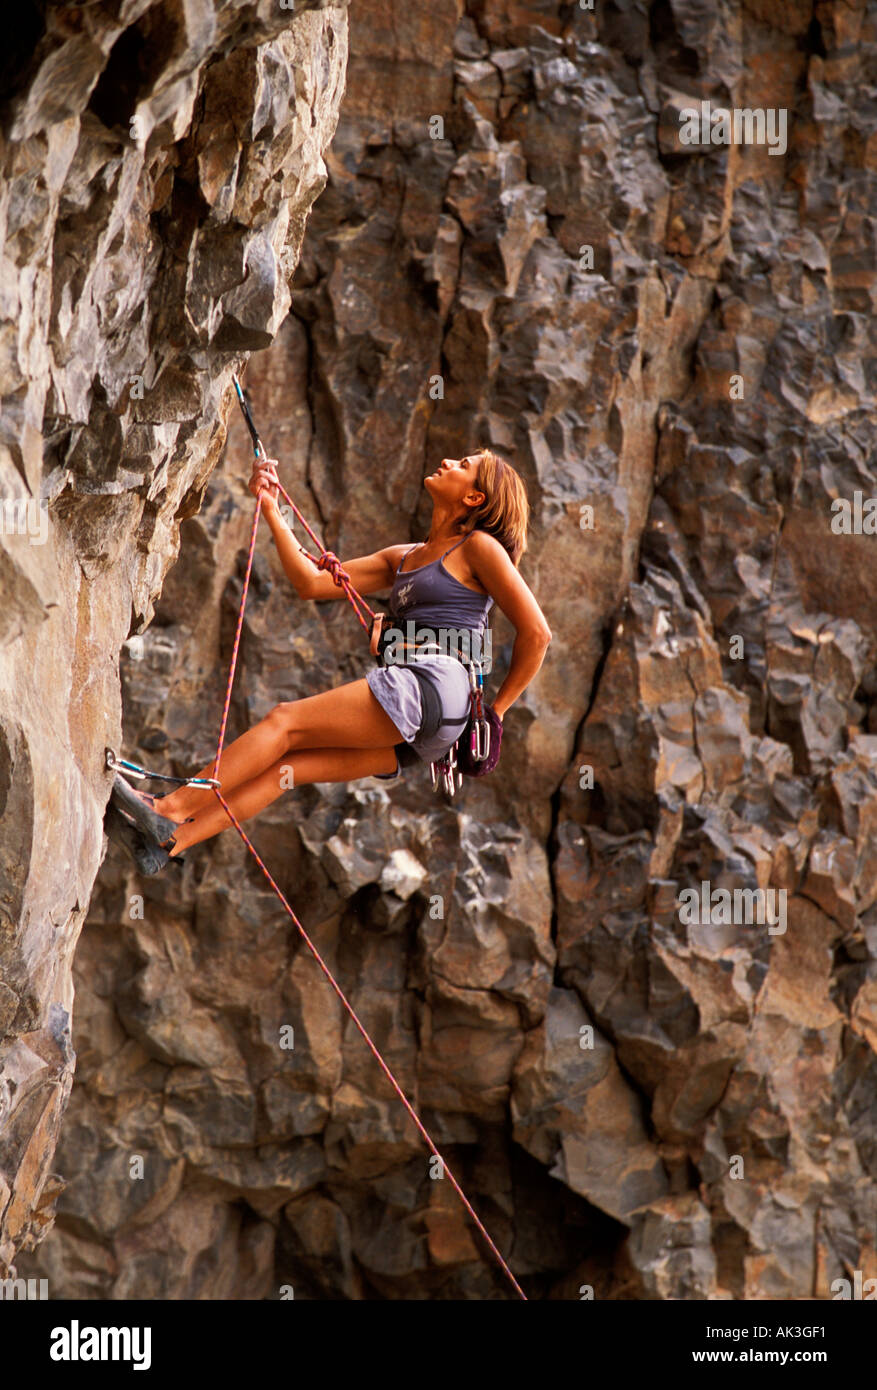 A young woman rock climber pauses during an ascent of a vertical basalt wall - Stock Image